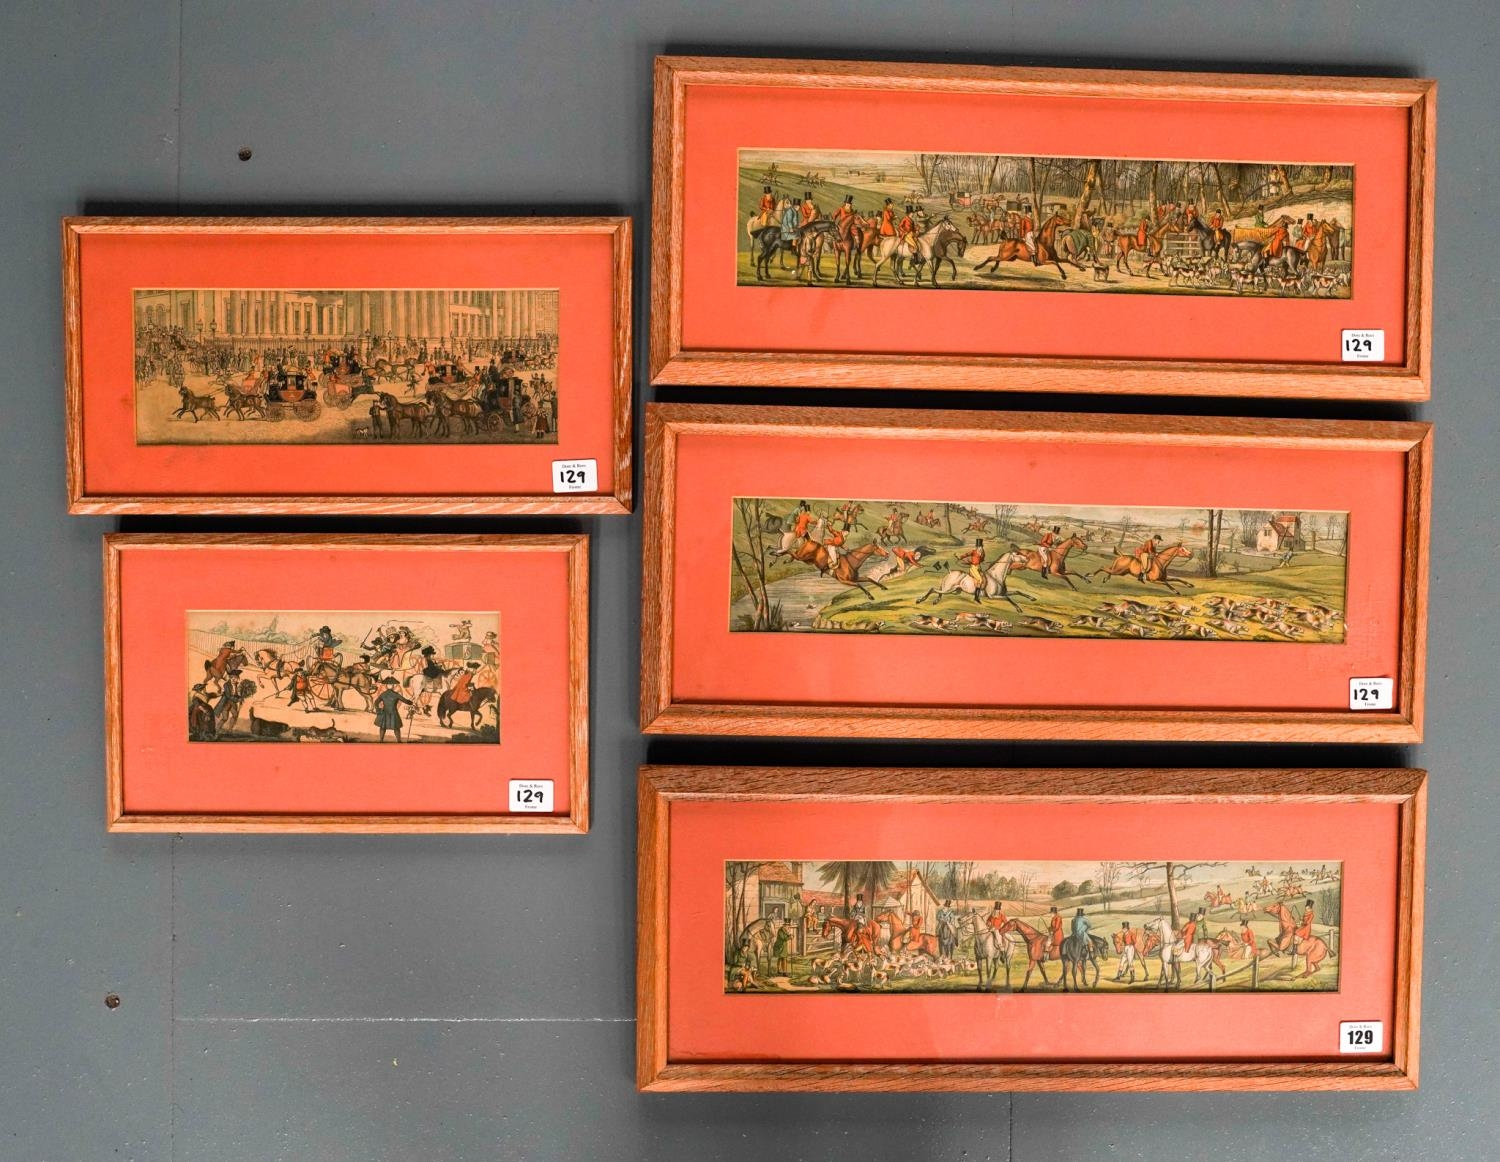 3 COLOUR LITHOGRAPHS OF HUNTING SCENES AND 2 COACHING SCENE LITHOGRAPHS, ALL IN LIMED OAK FRAMES 9cm - Image 2 of 2